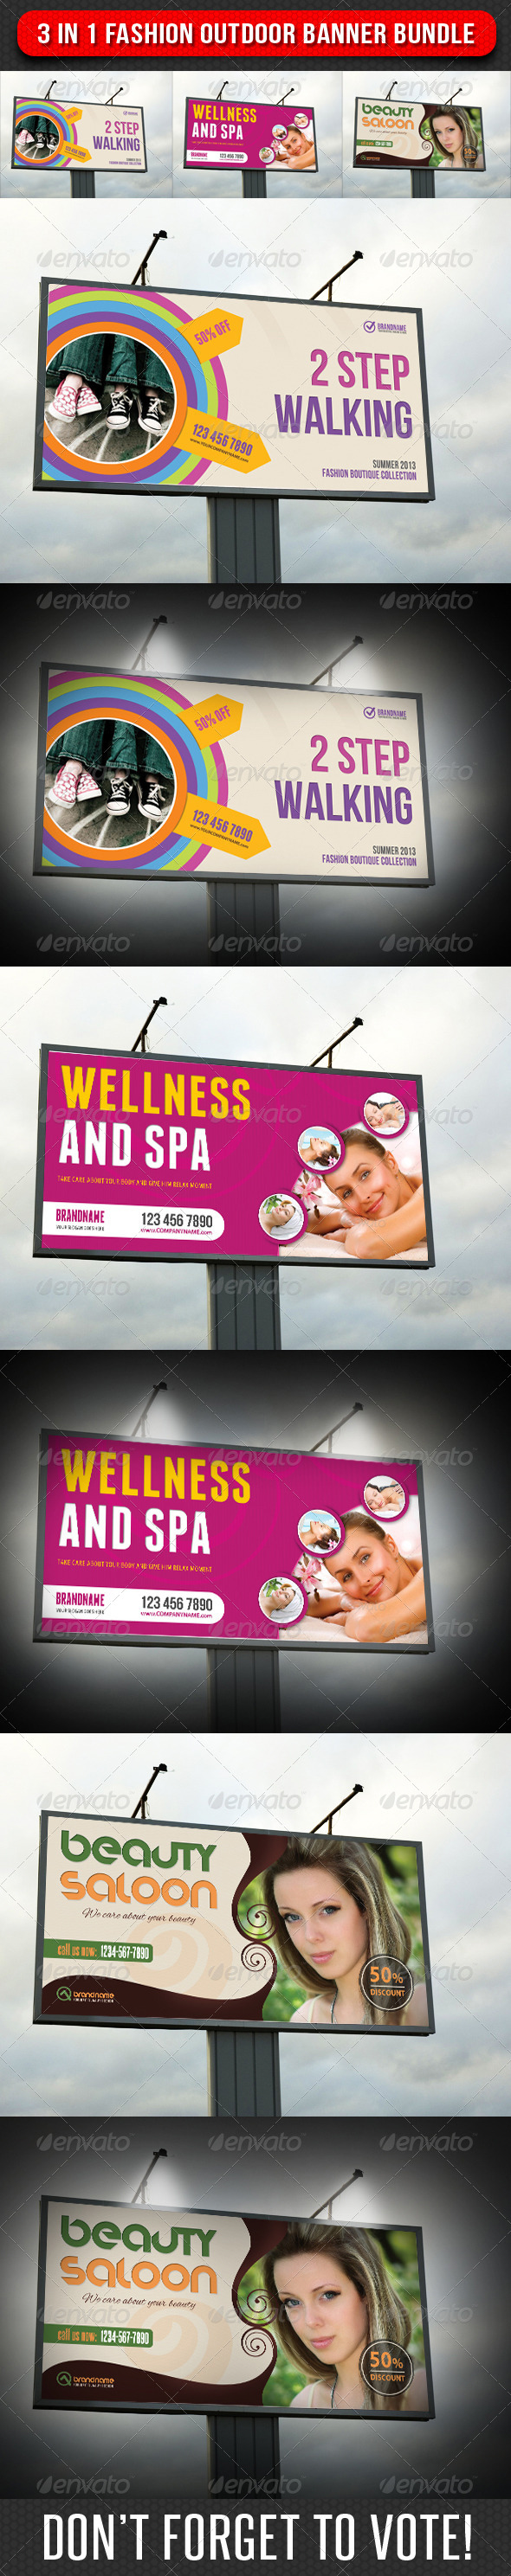 GraphicRiver 3 in 1 Fashion Outdoor Banner Bundle 04 7675845